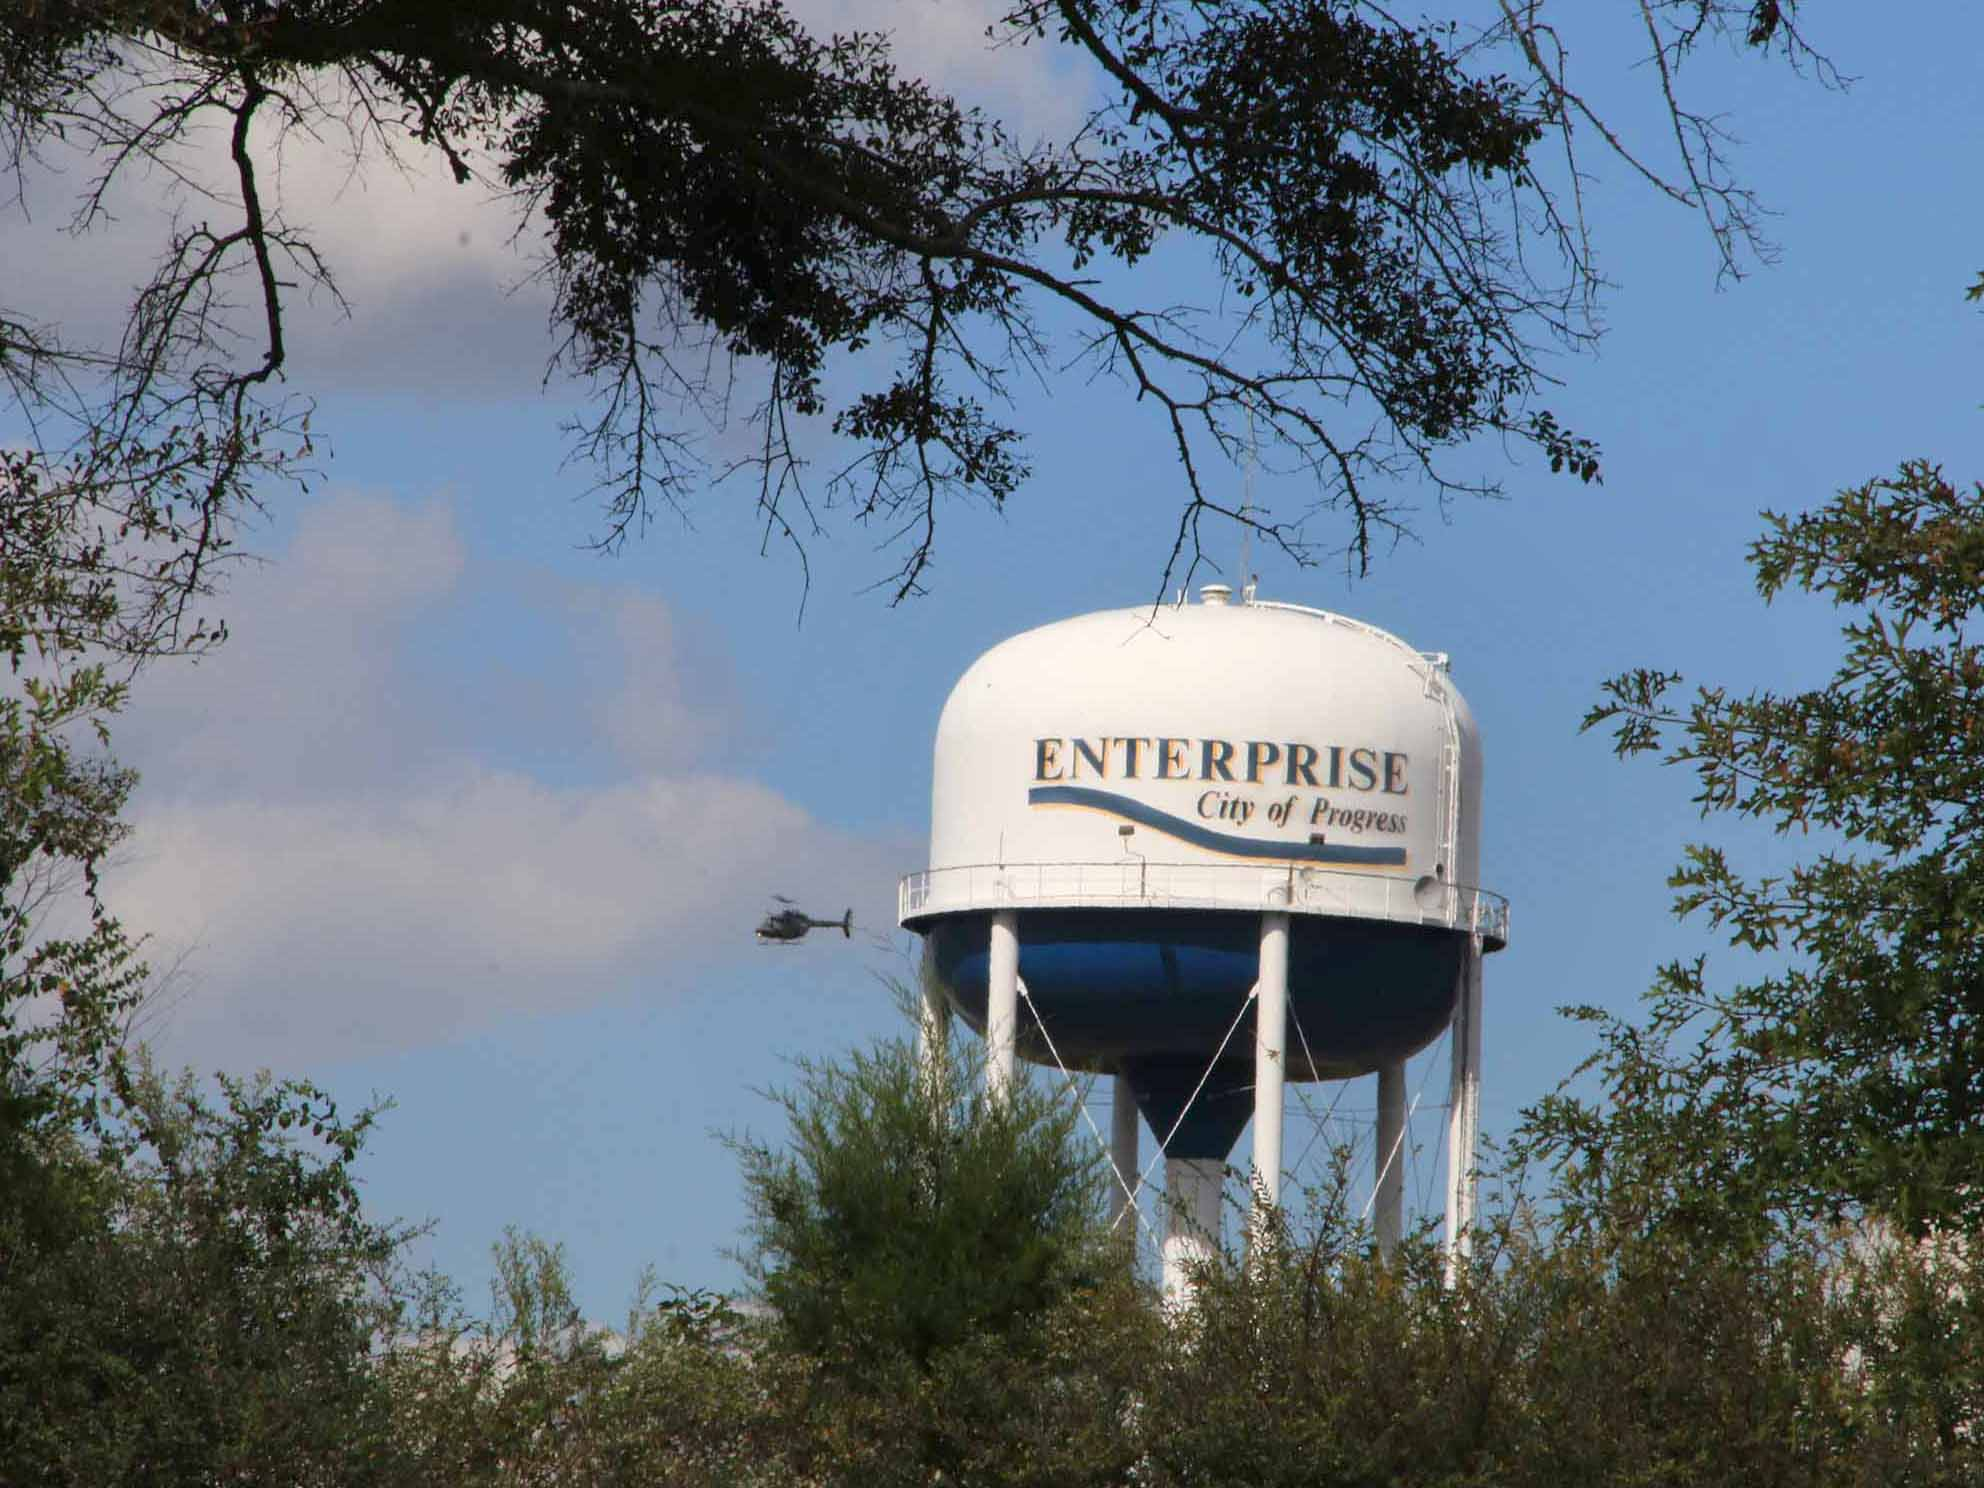 City Water Tower at Yancey Parker Industrial Park.